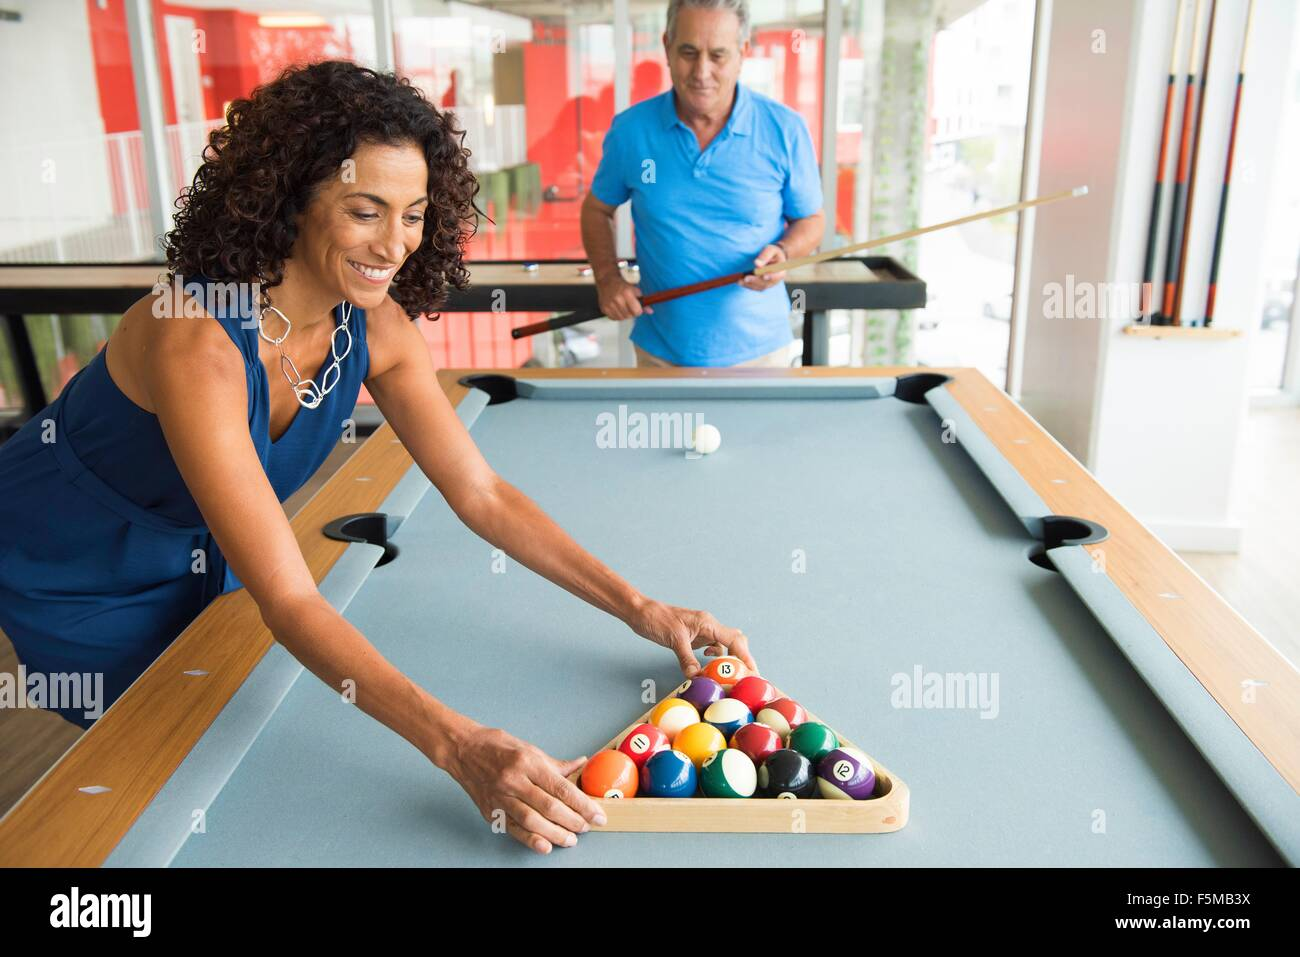 Setting Up A Pool Table Senior Man And Wife Setting Up Pool Table Stock Photo Royalty